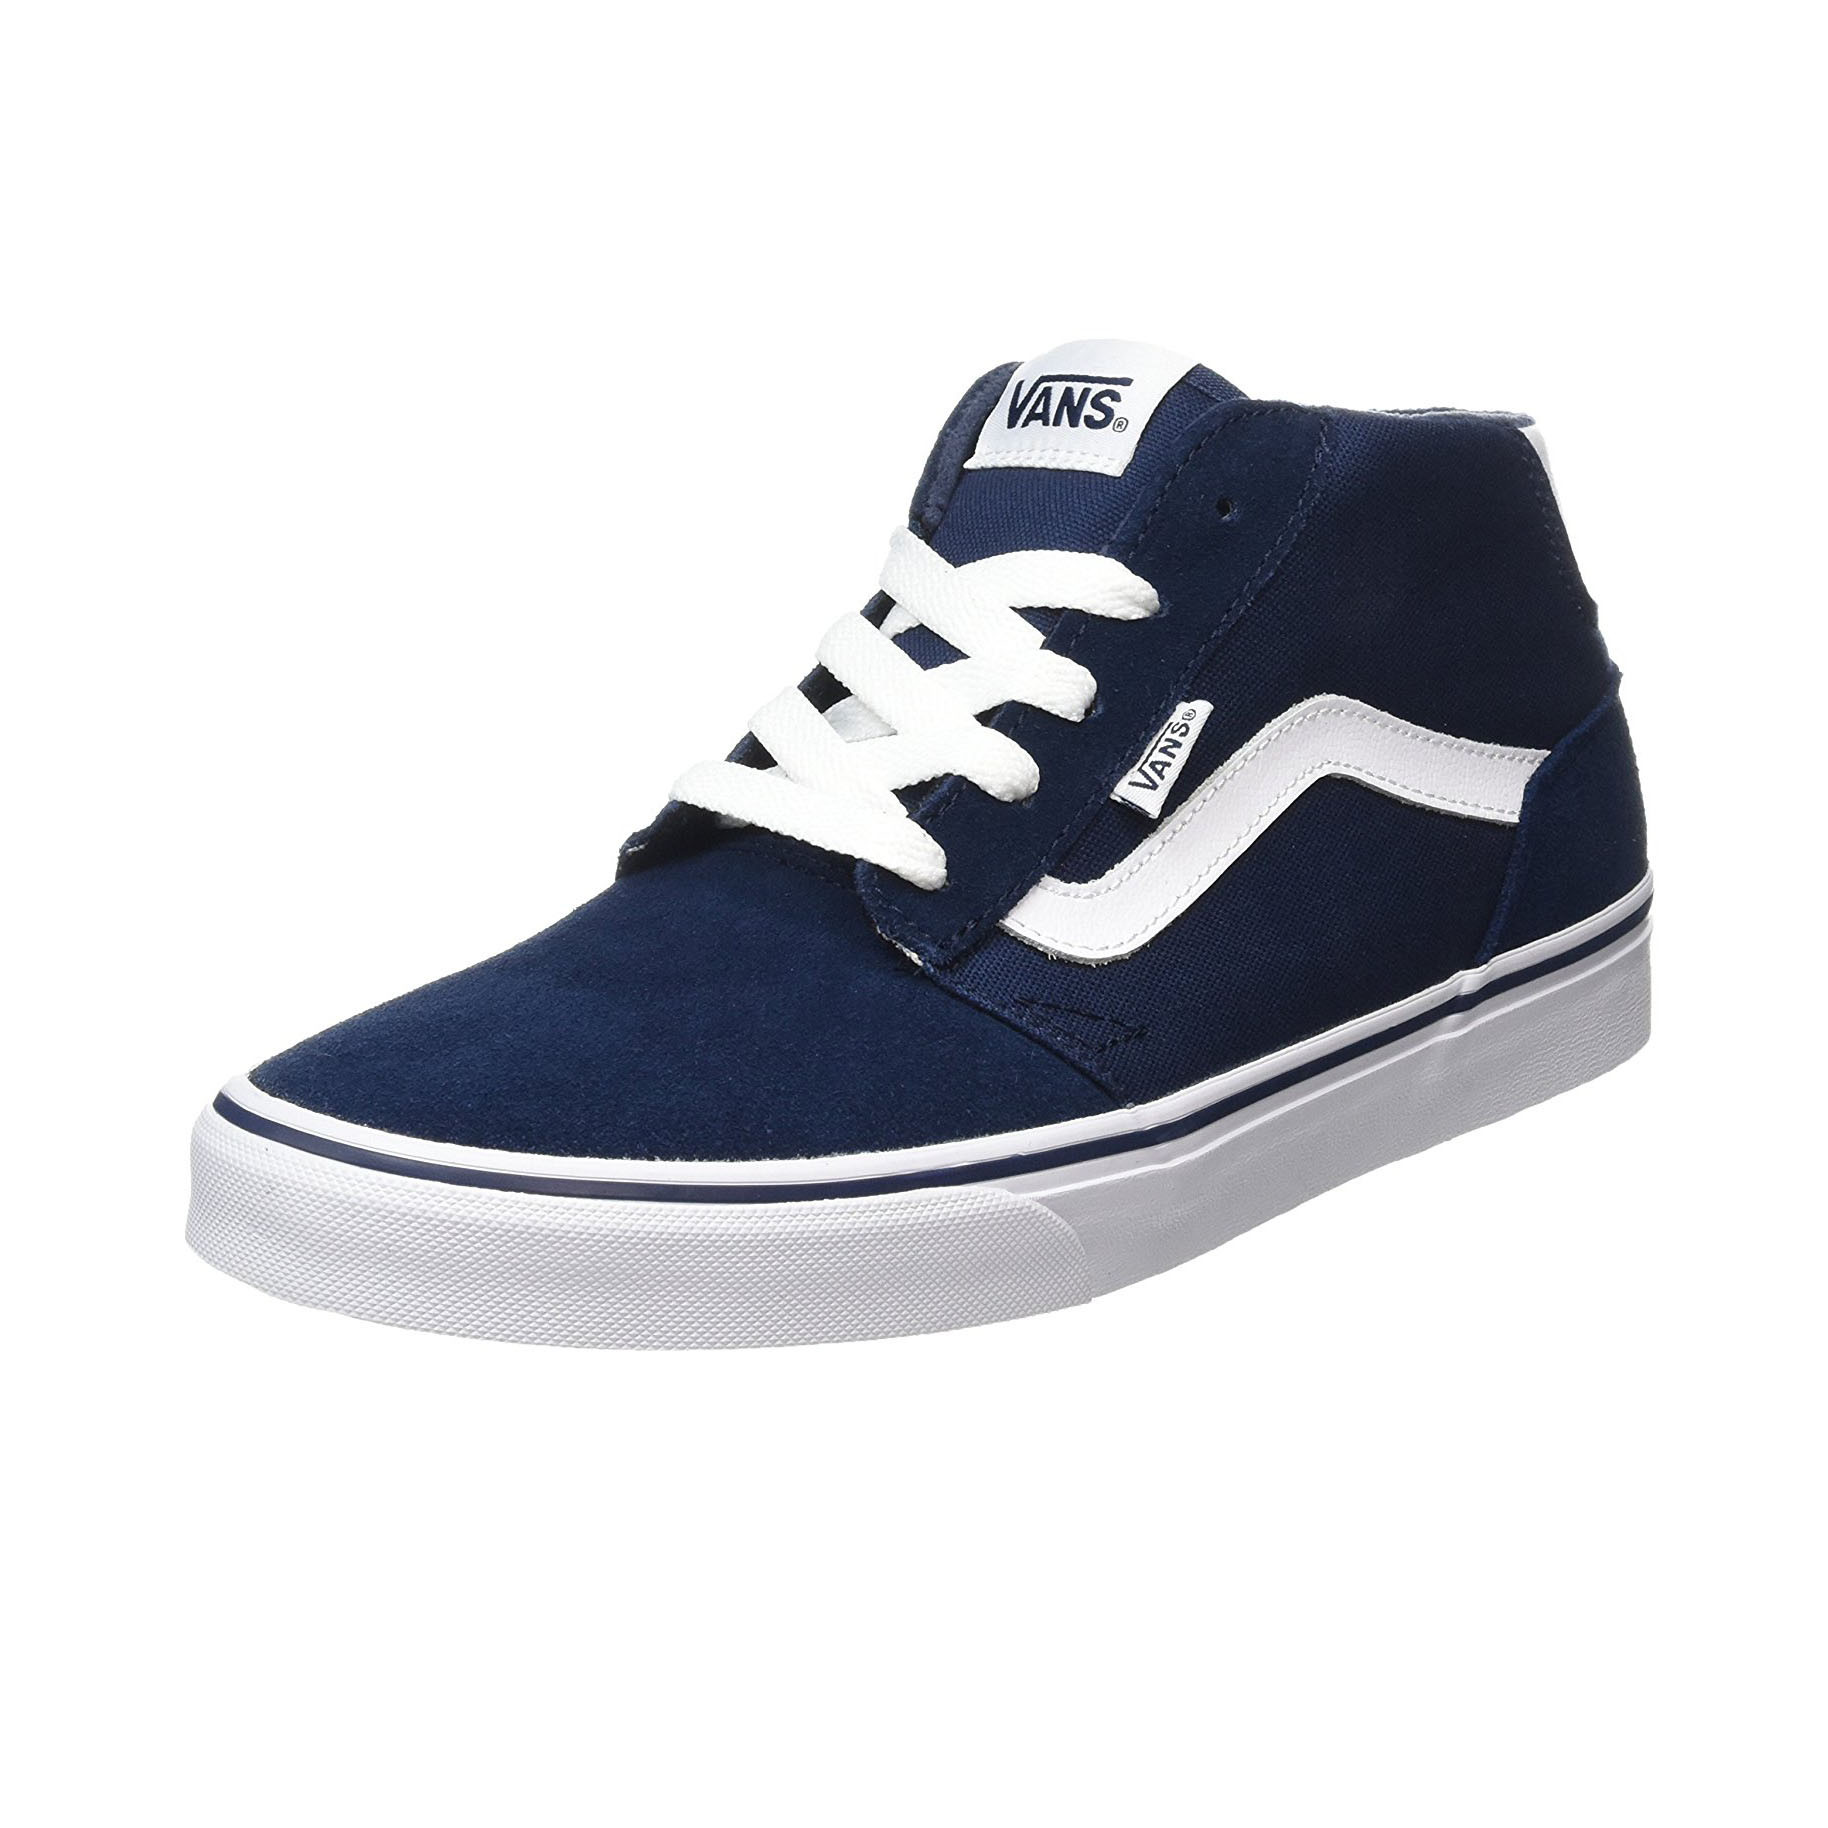 aaf2722755fc1 Vans Men s Chapman Mid Stripe Suede Canvas Shoes Trainers Dress Blue ...